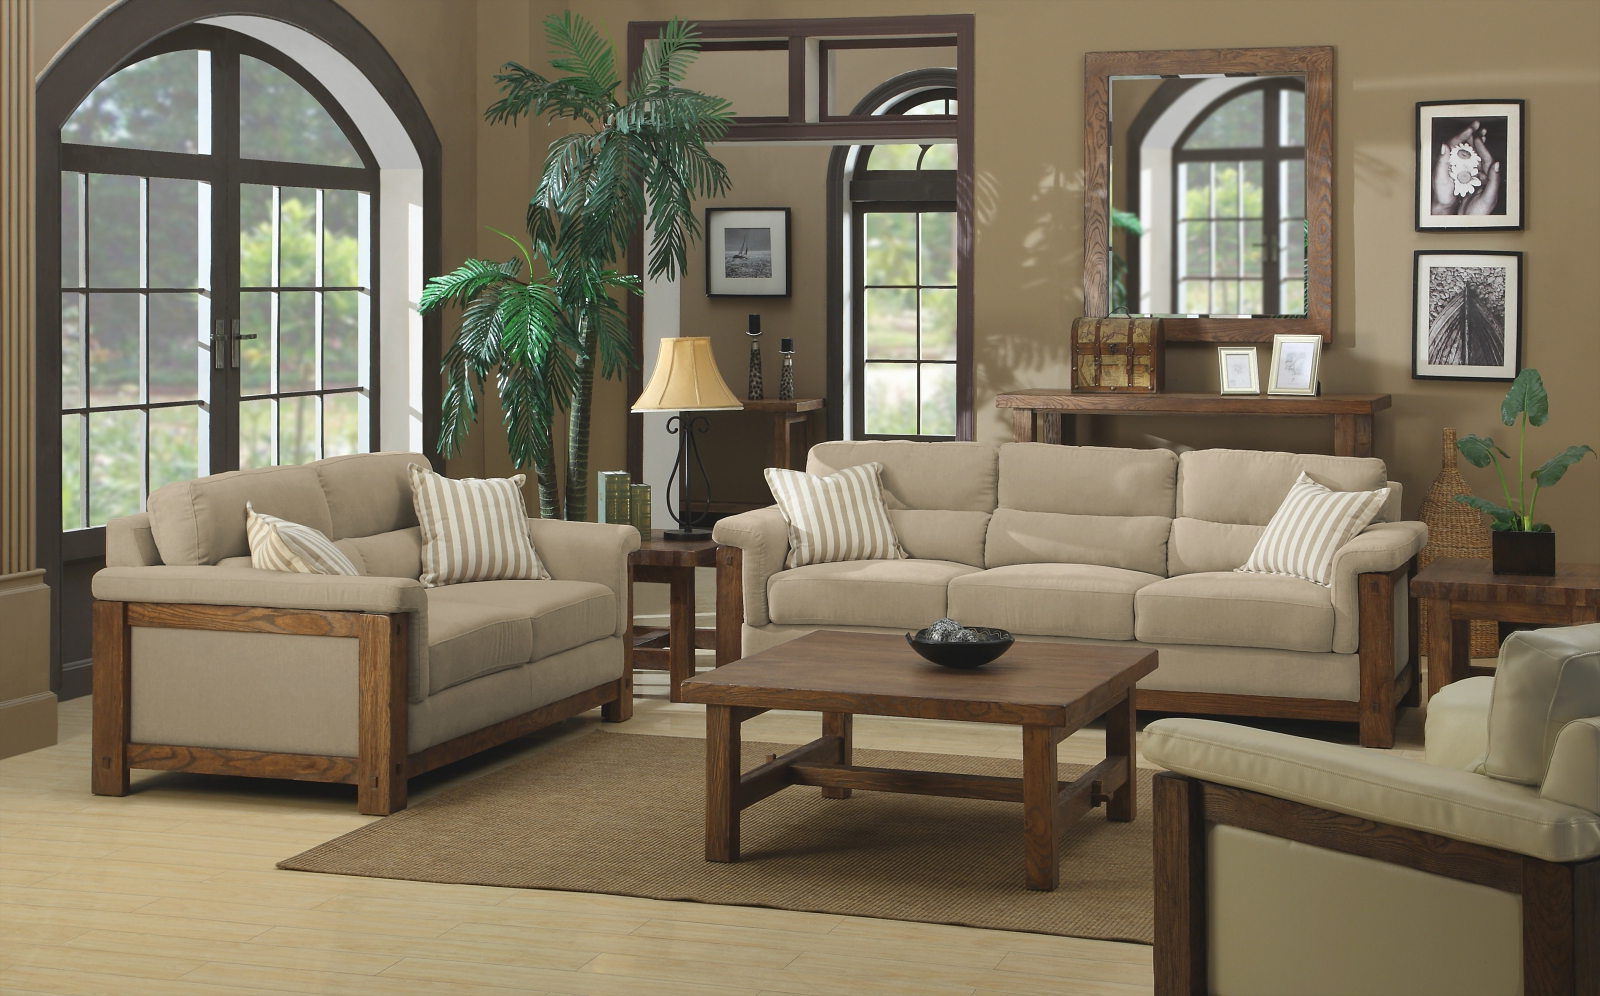 Living room in beige color for Beige color living room ideas